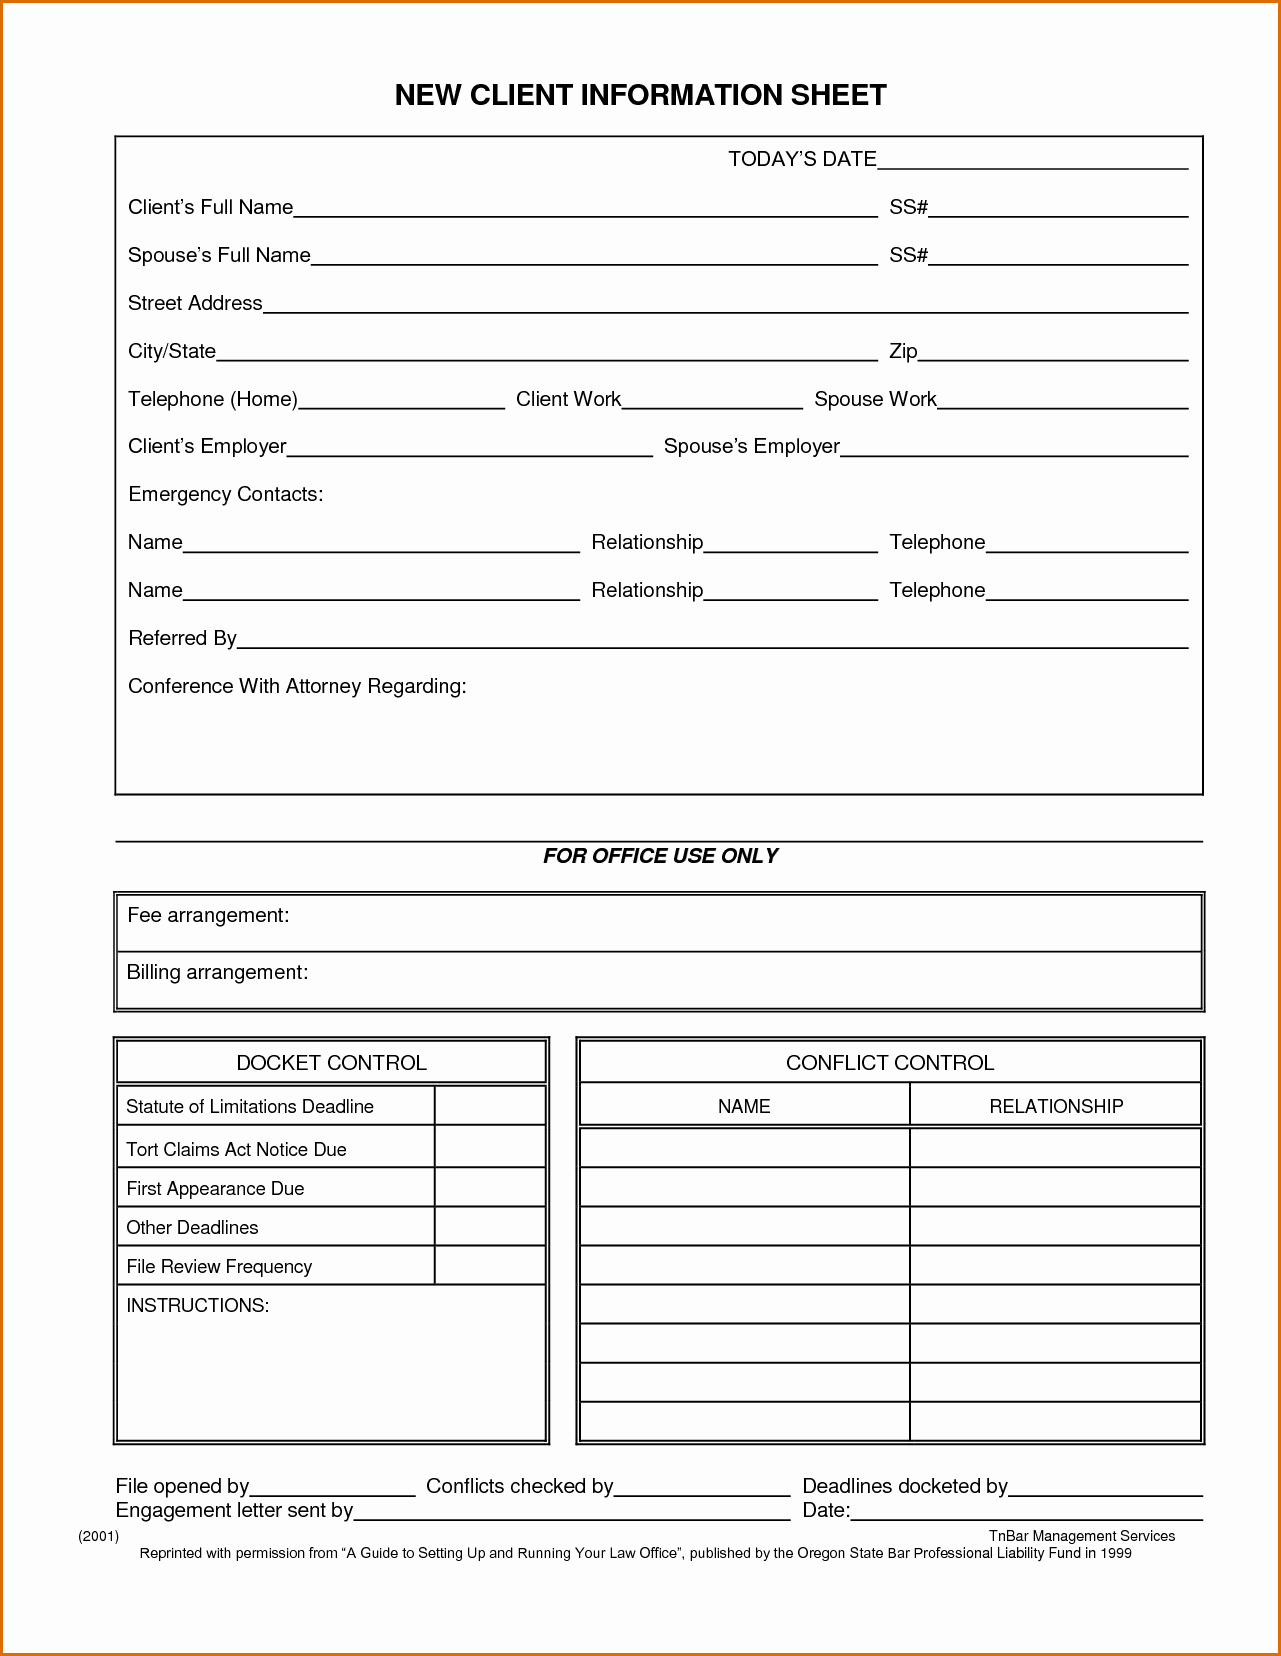 Customer Information Sheet Template